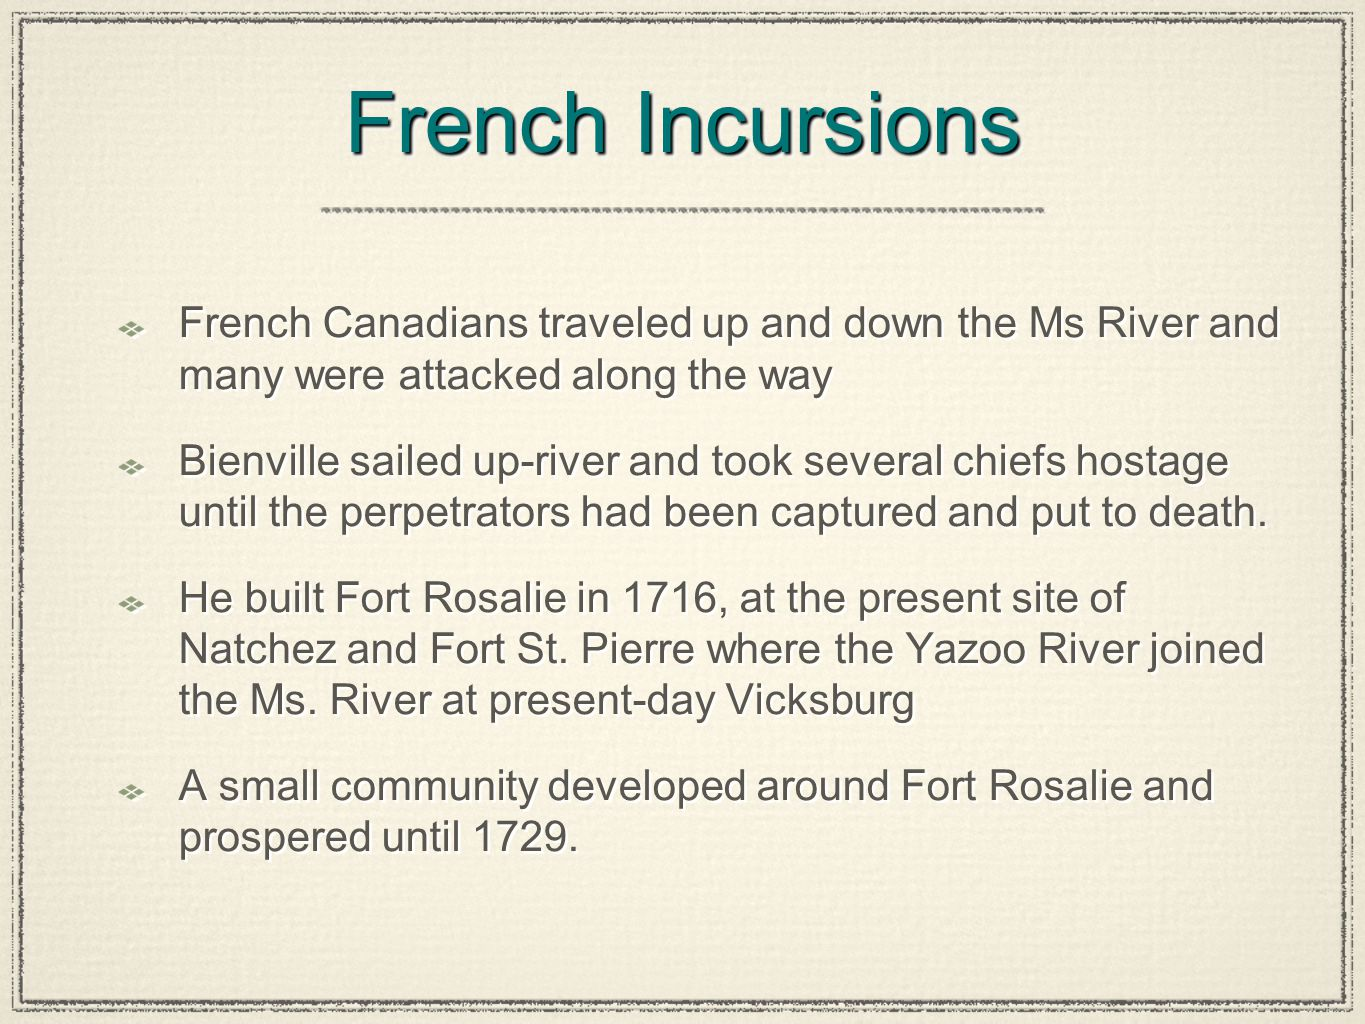 French Incursions French Canadians traveled up and down the Ms River and many were attacked along the way.